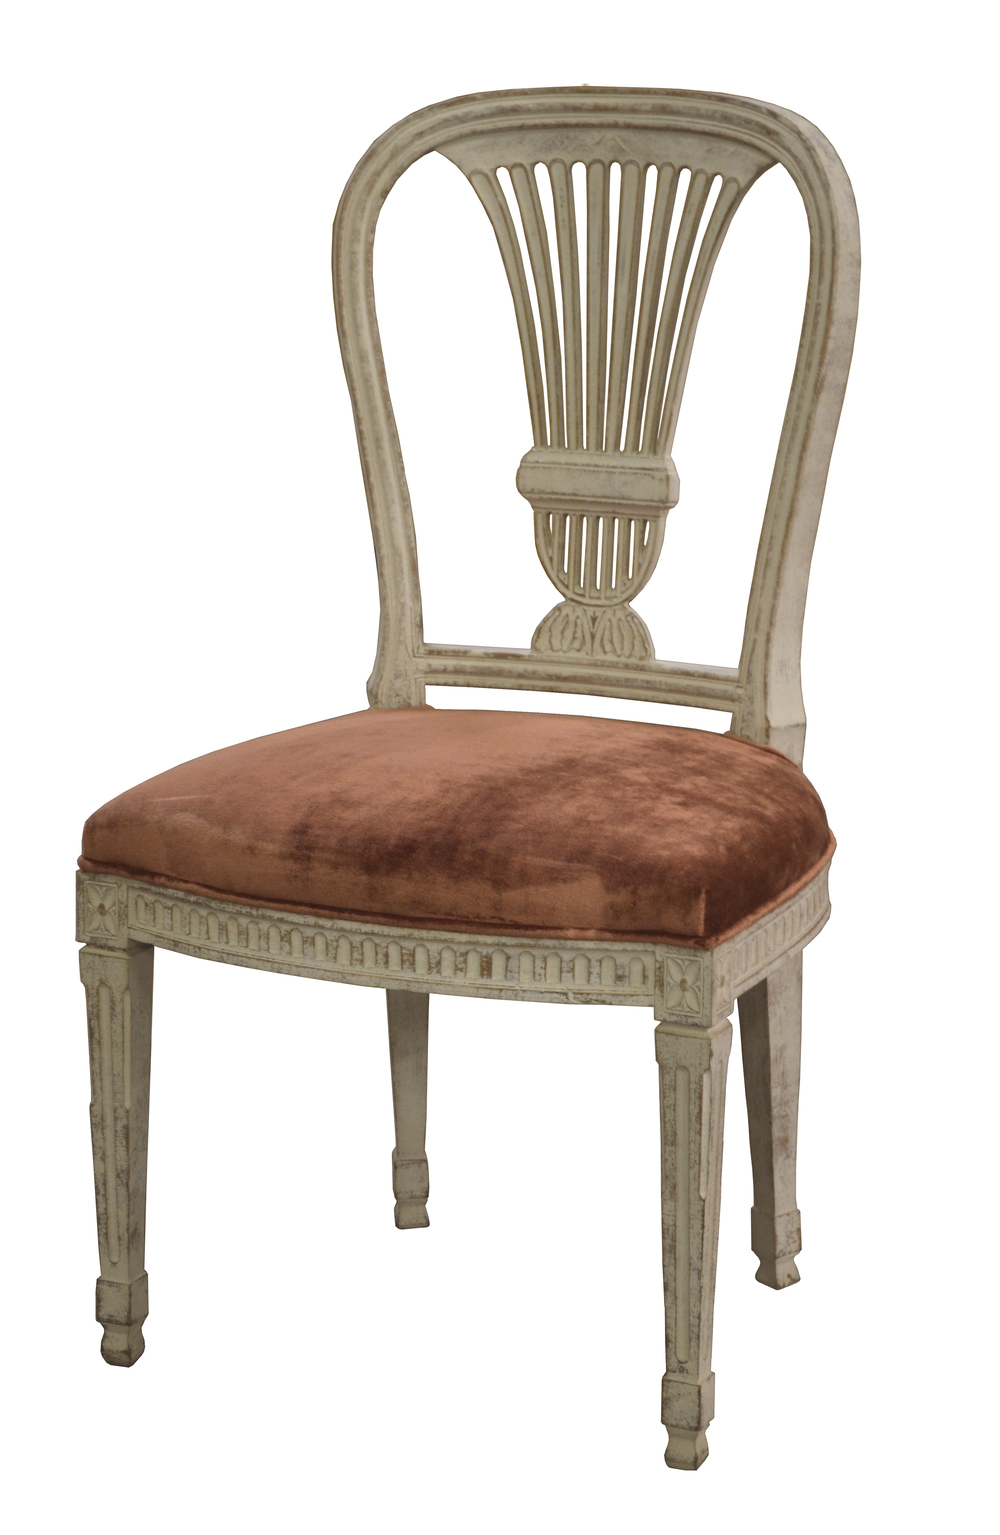 GJ Styles - Erica Side Chair with Crushed Velvet Seat